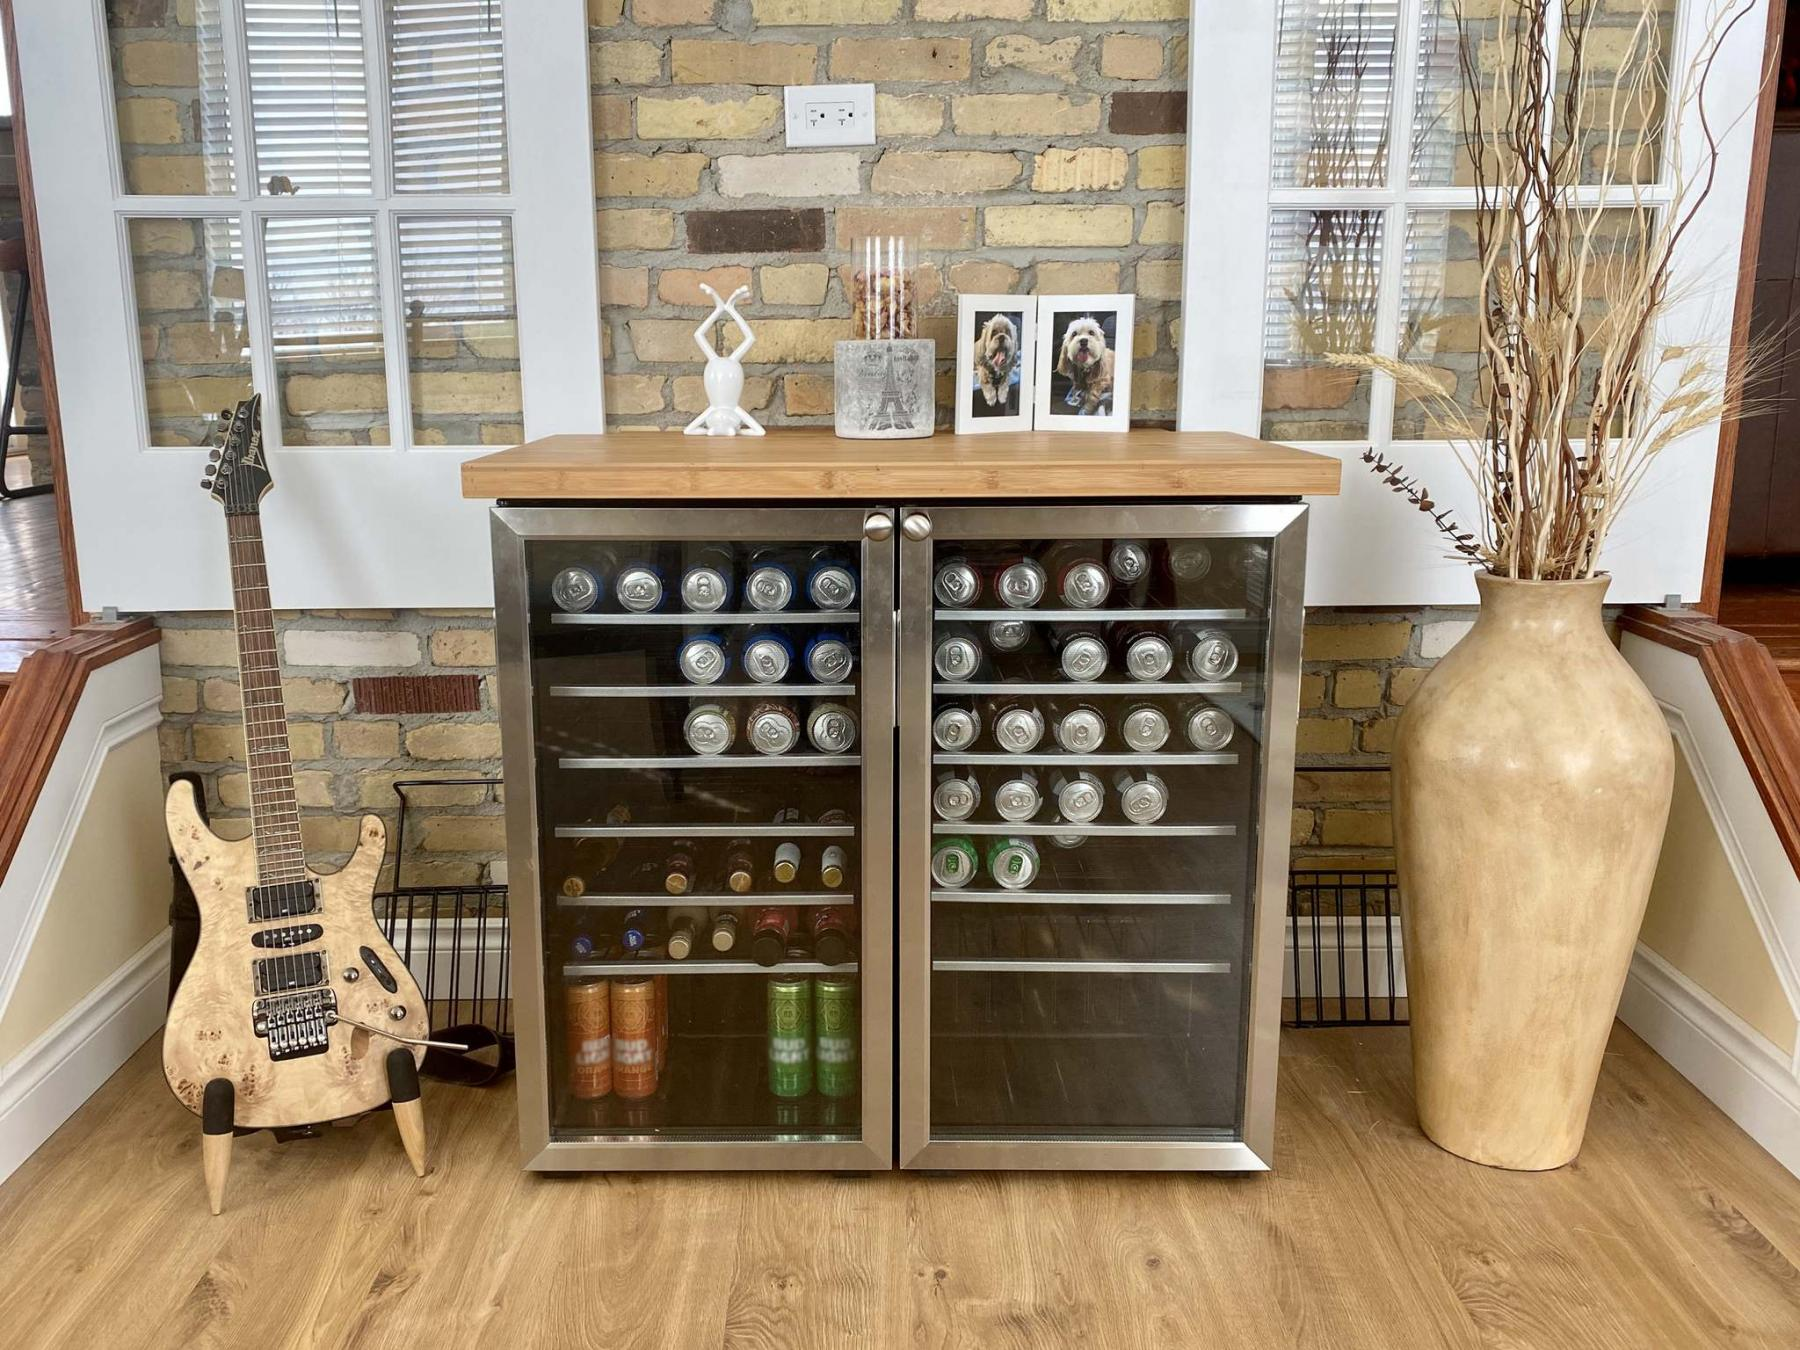 <p>Photos by Marc LaBossiere / Winnipeg Free Press</p><p>A pair of stainless steel Danby coolers were aligned adjacent to each other and a custom bamboo countertop was set on top. </p></p>